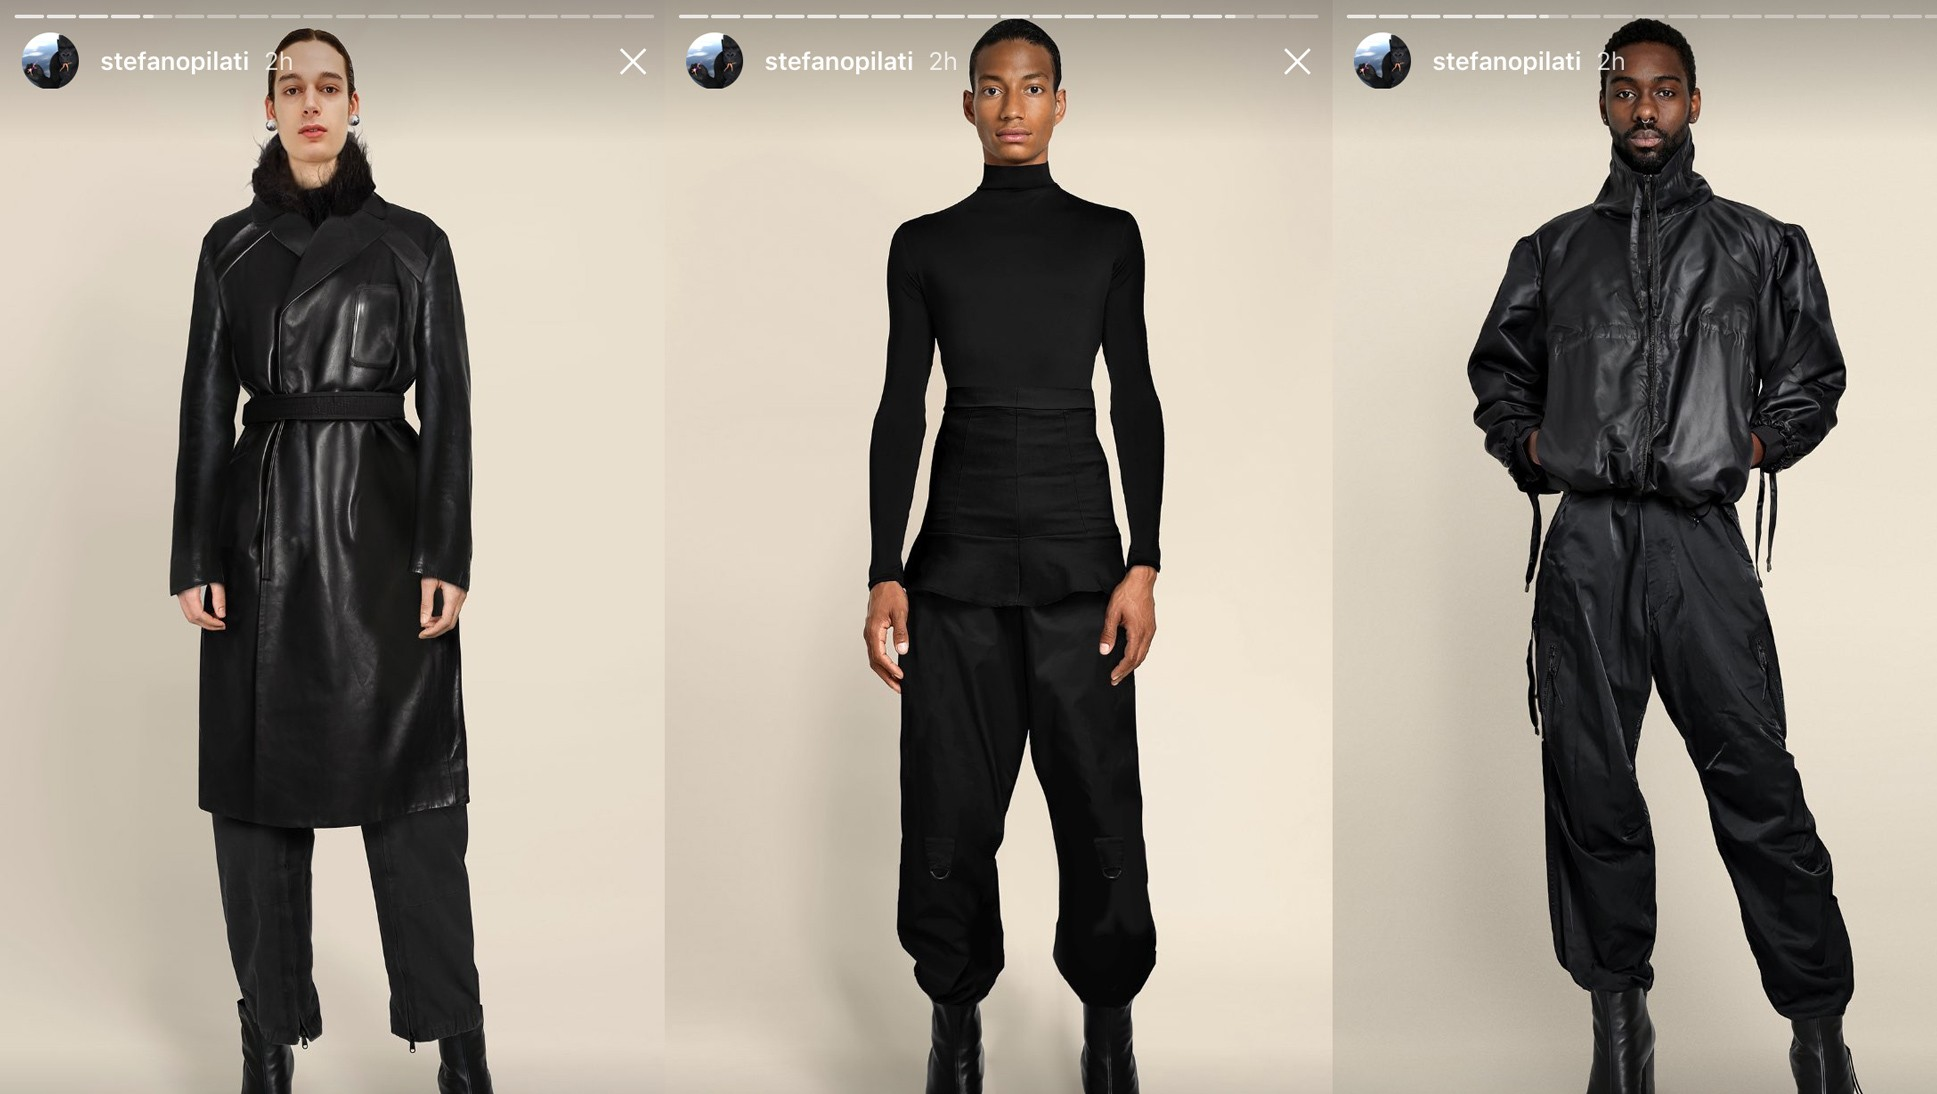 stefano pilati teases his new genderless collection on instagram